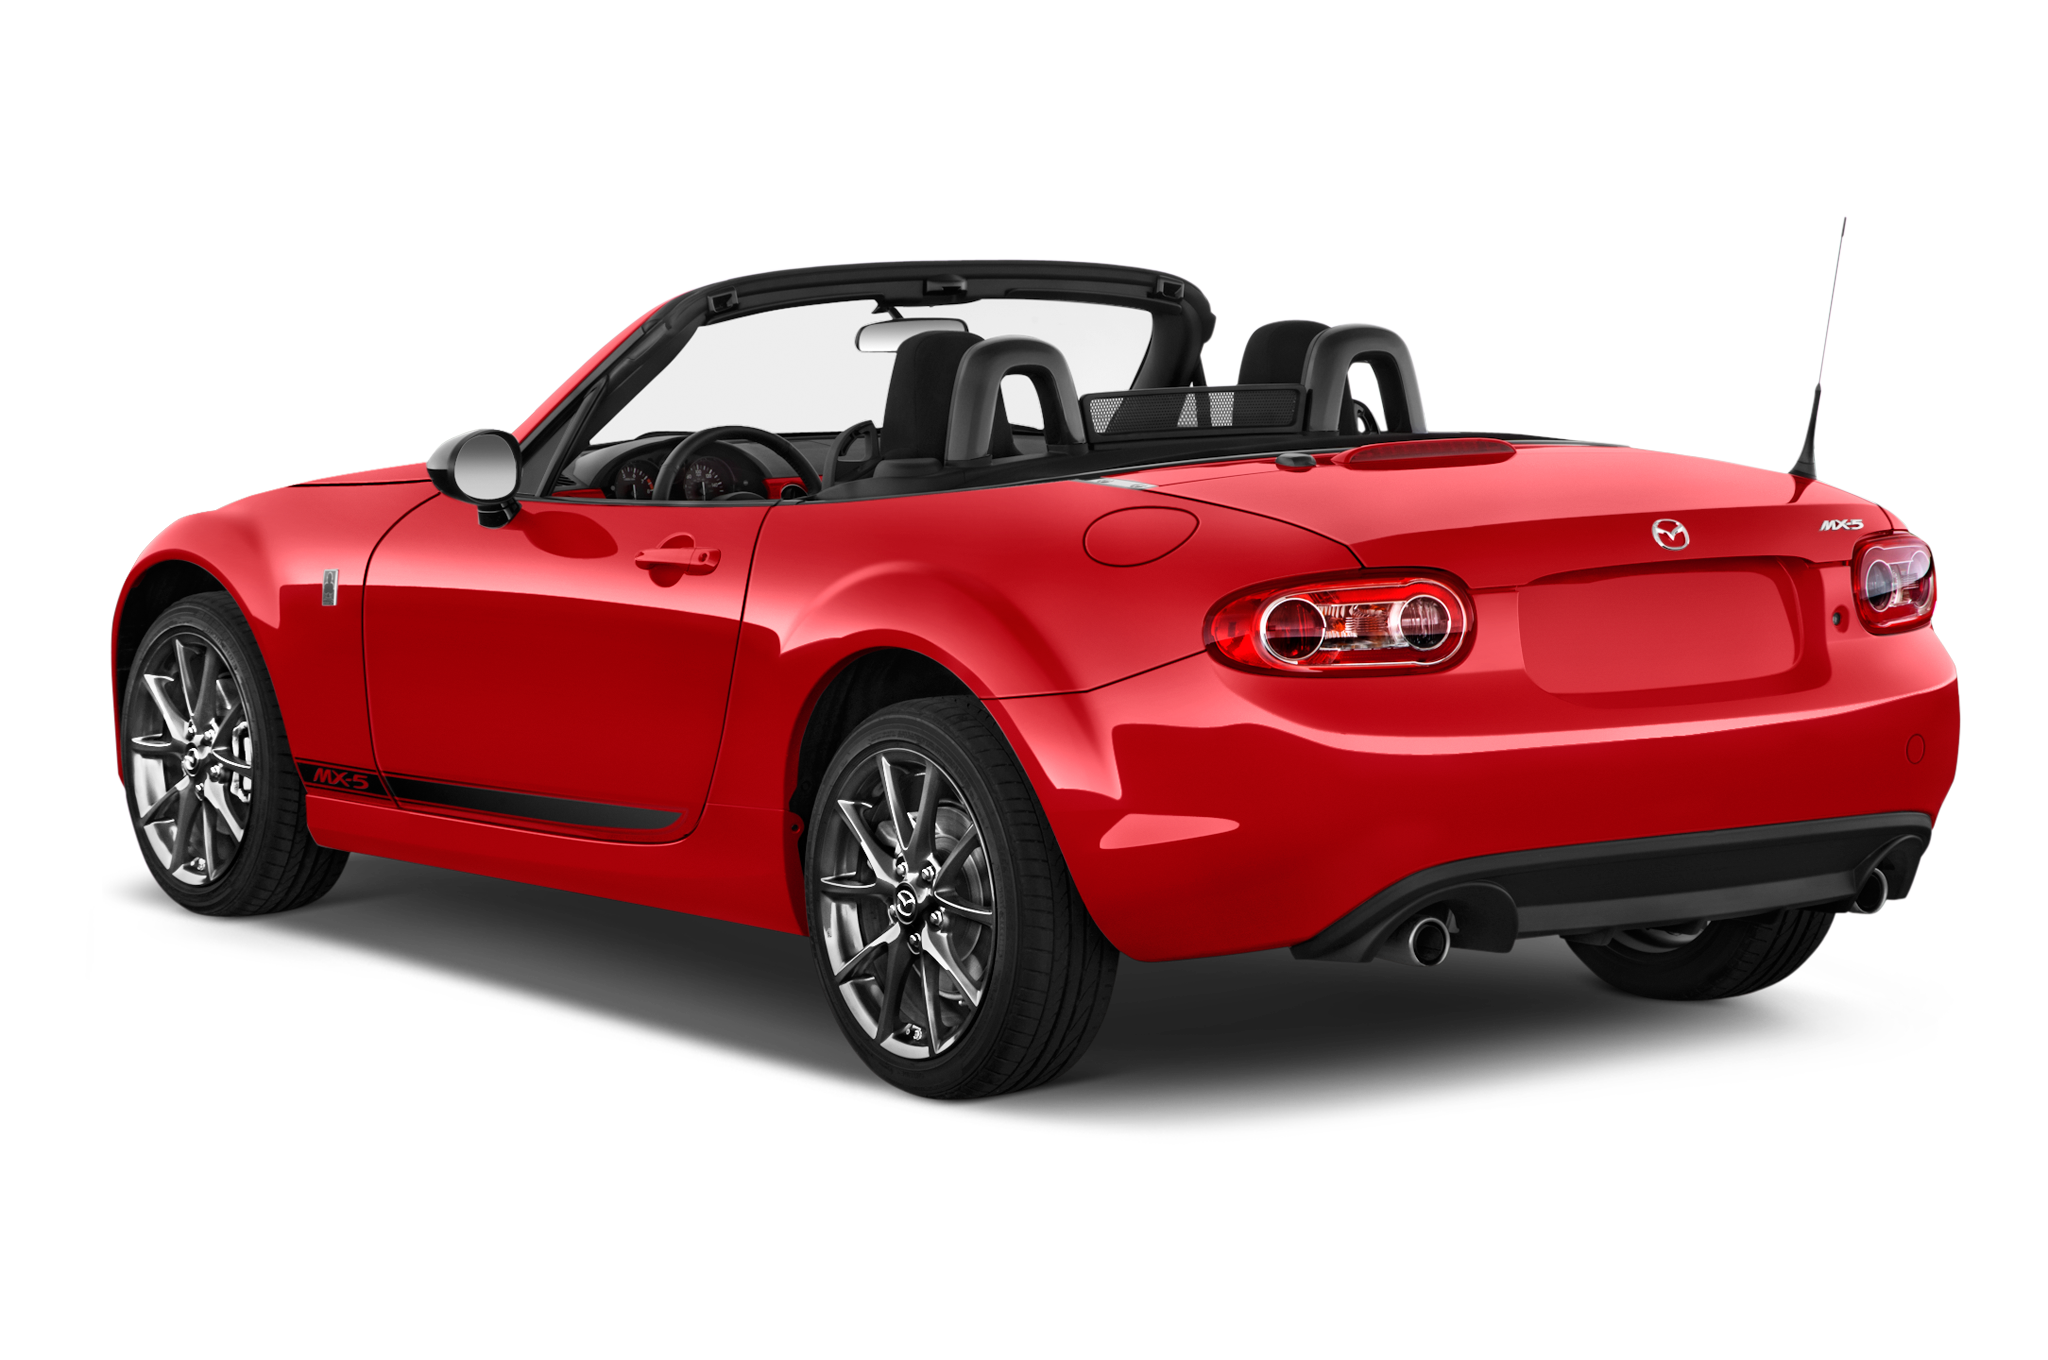 2015 mazda miata 25th anniversary edition costs 33 000. Black Bedroom Furniture Sets. Home Design Ideas